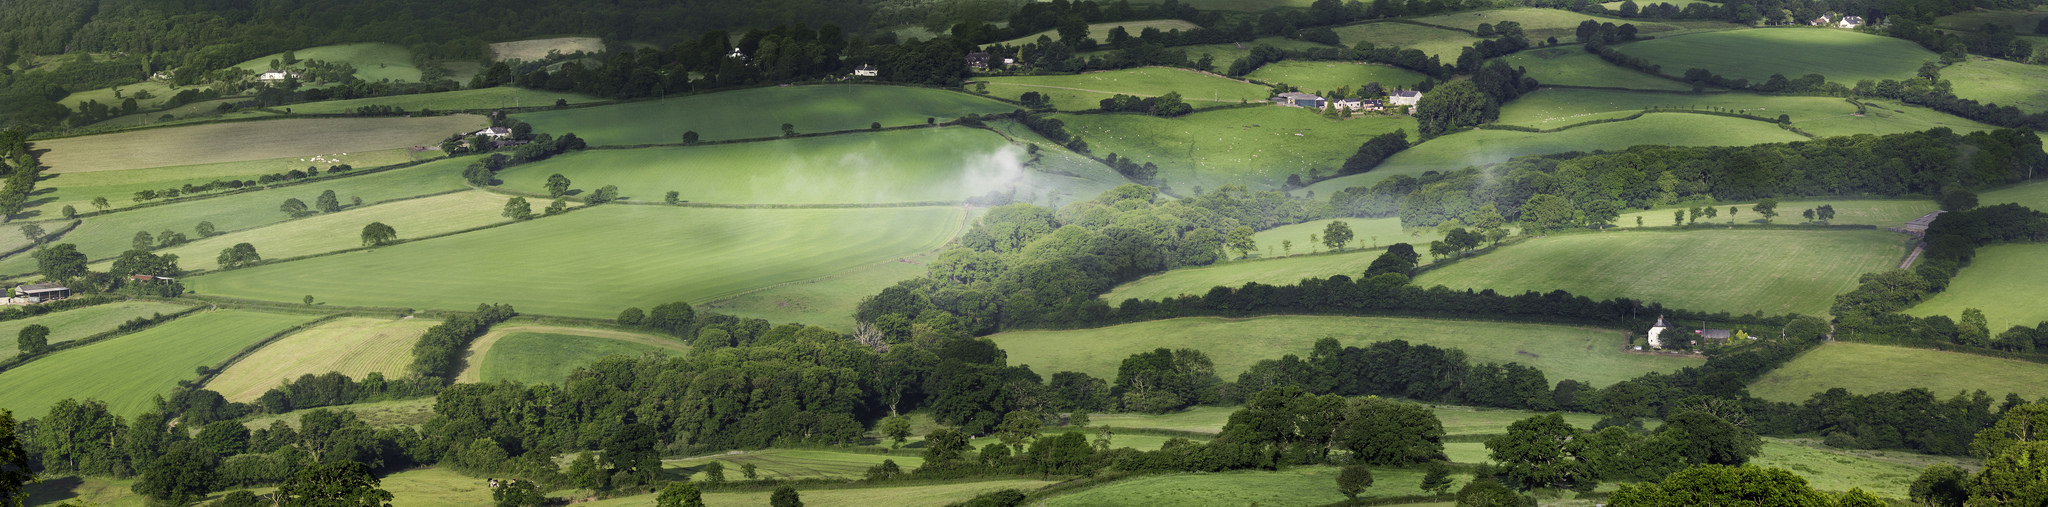 View from Dumpdon Hill. Photo: Liam Marsh